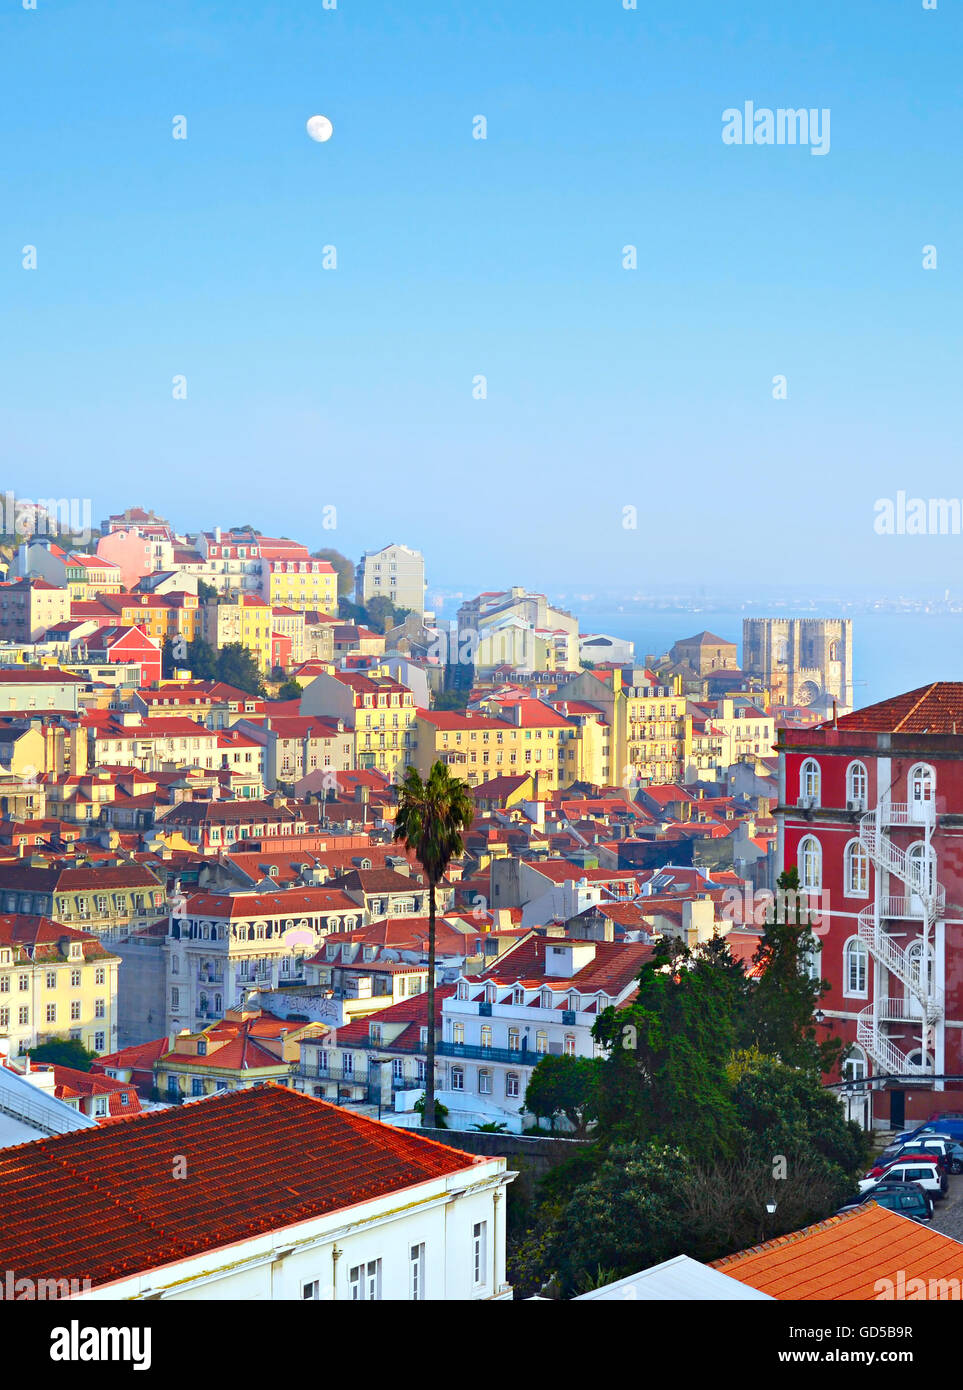 Architecture of Old Town of Lisbon at sunset. Portugal - Stock Image